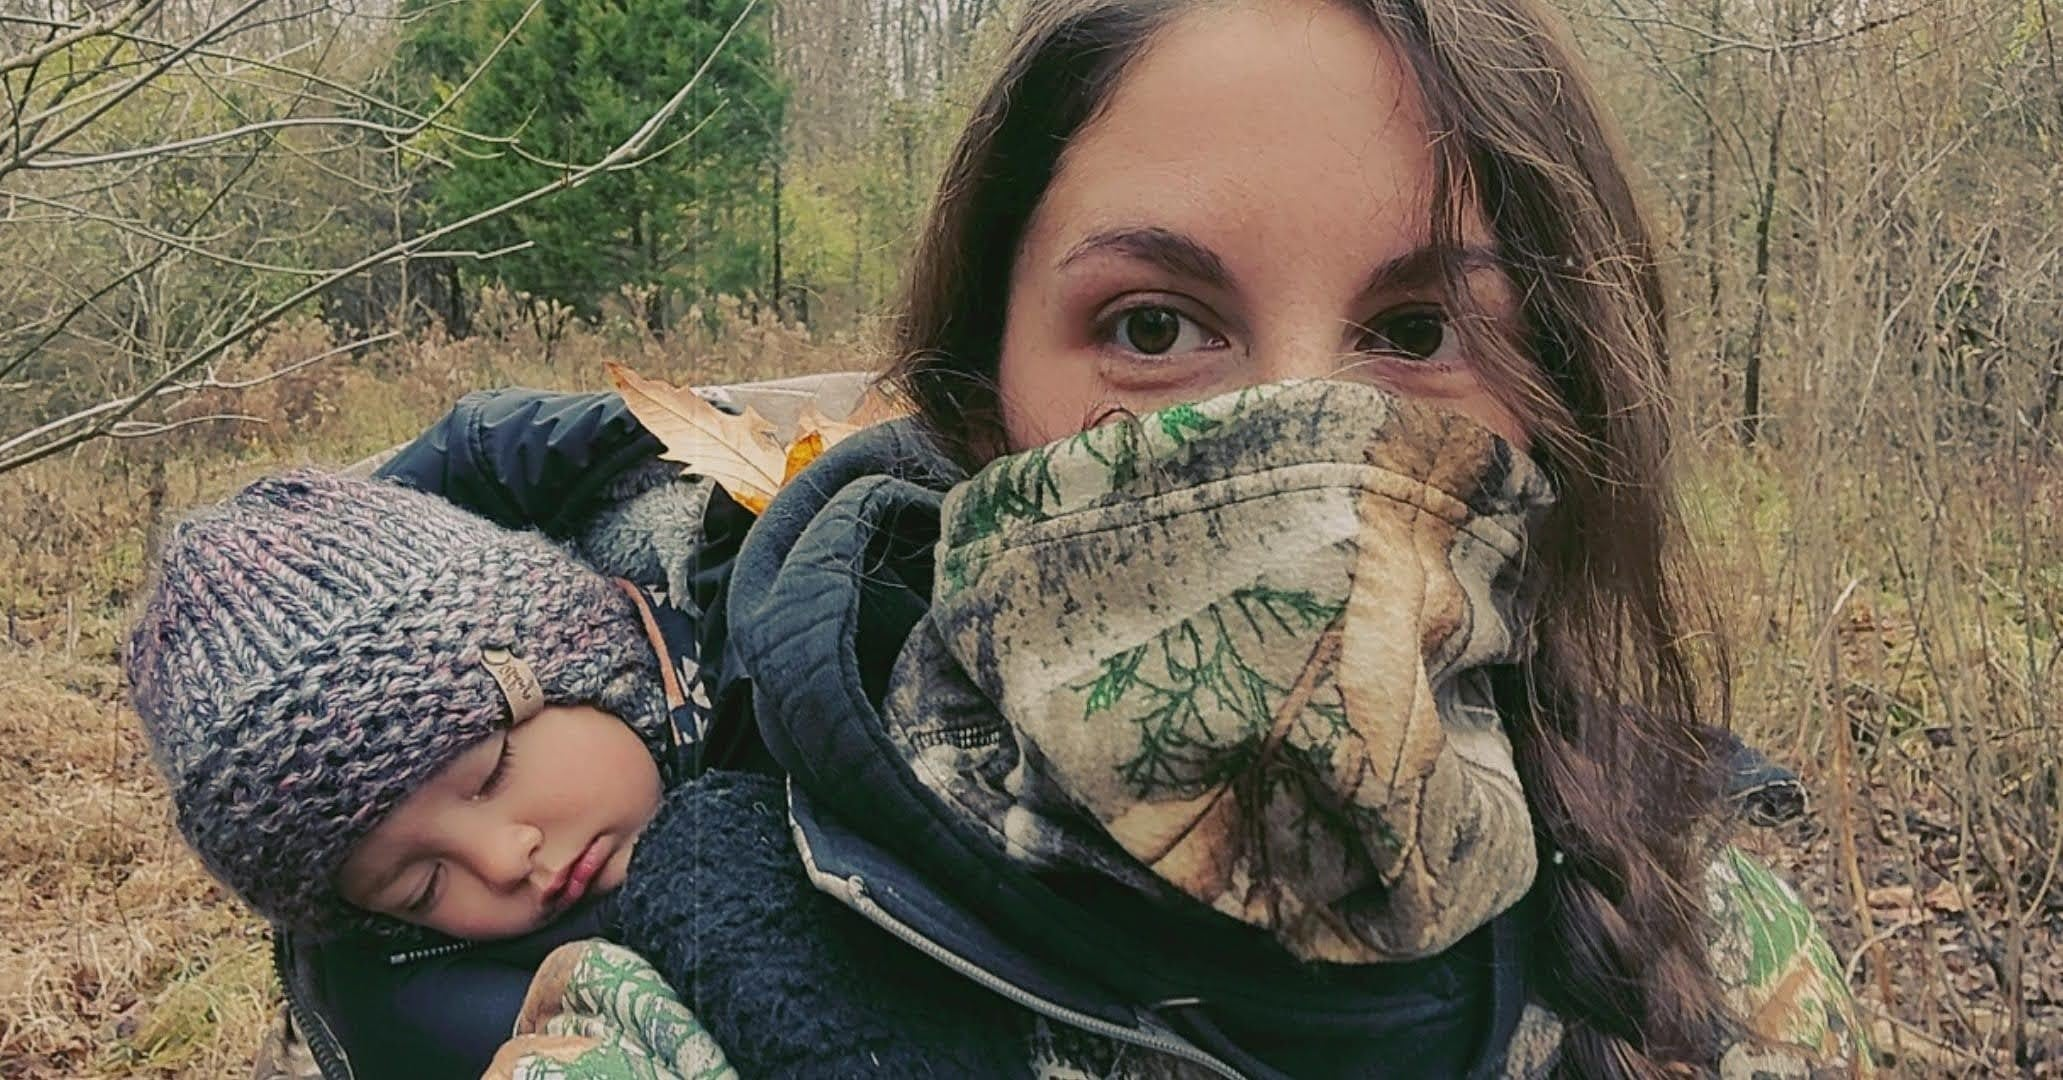 Hunting with kids is a lot of work, but rewarding.